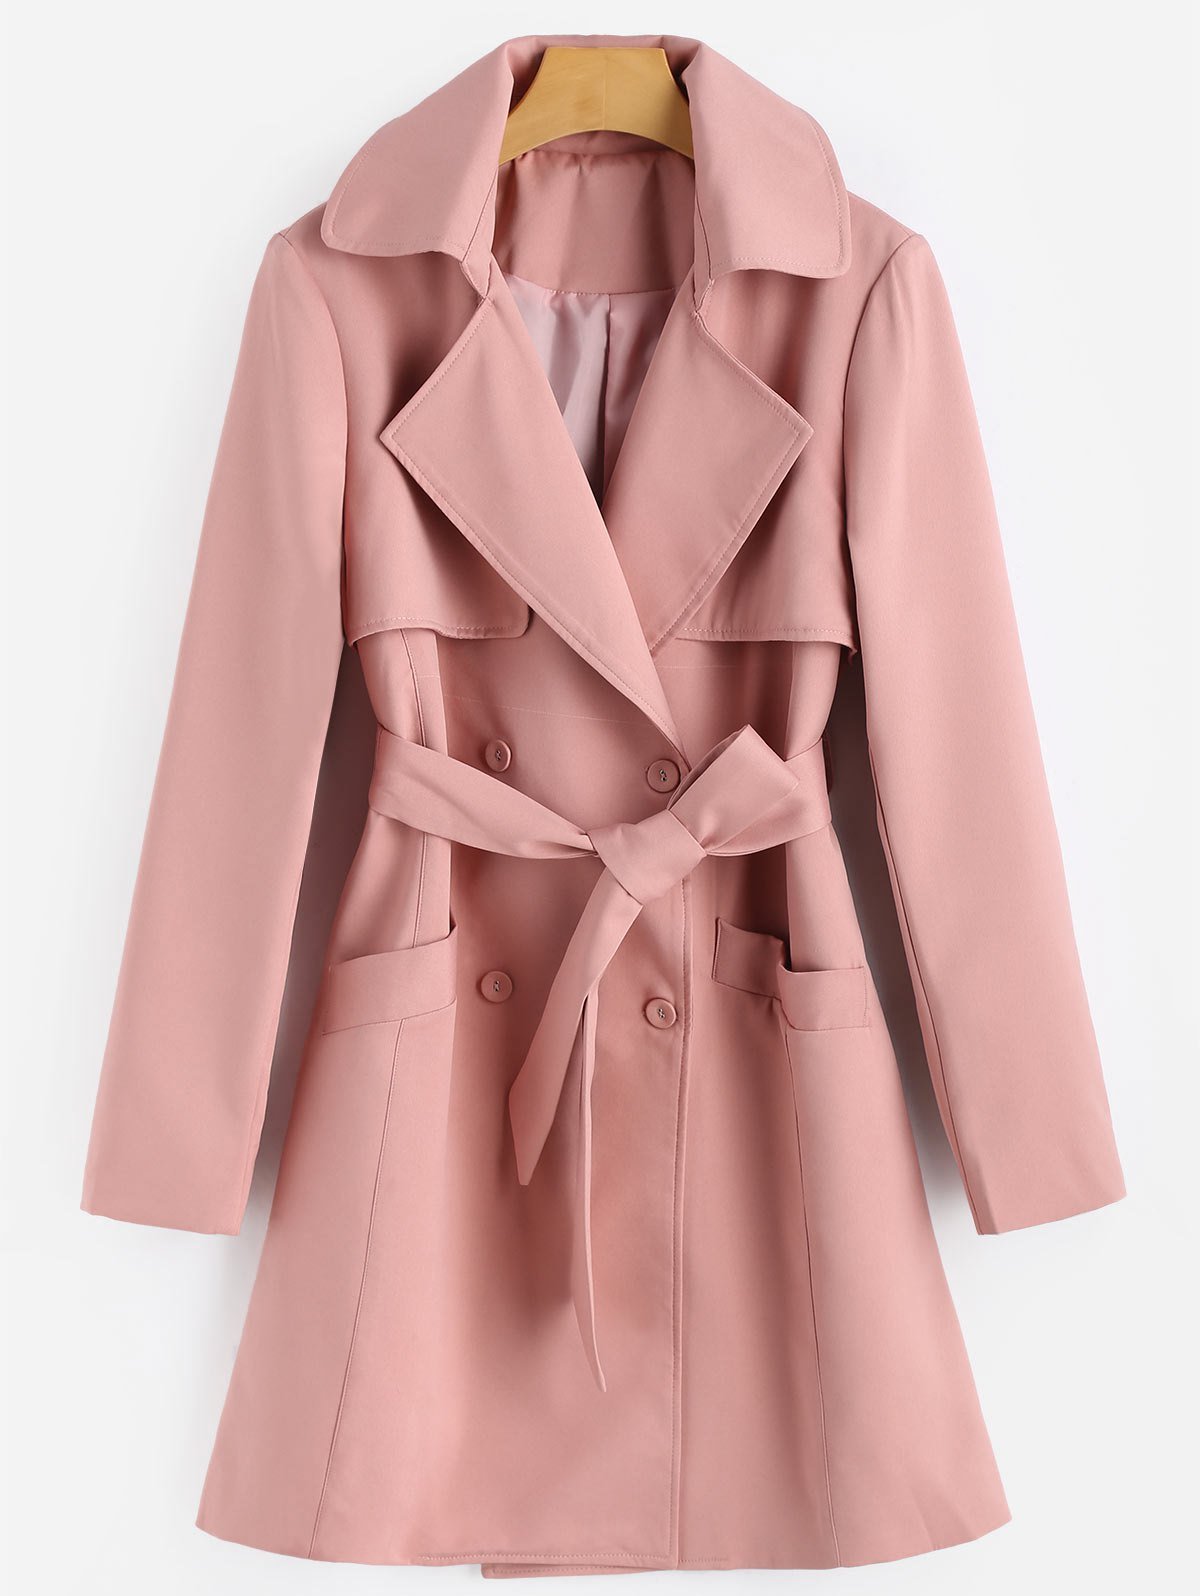 Image of Belted Double Breasted Lapel Coat